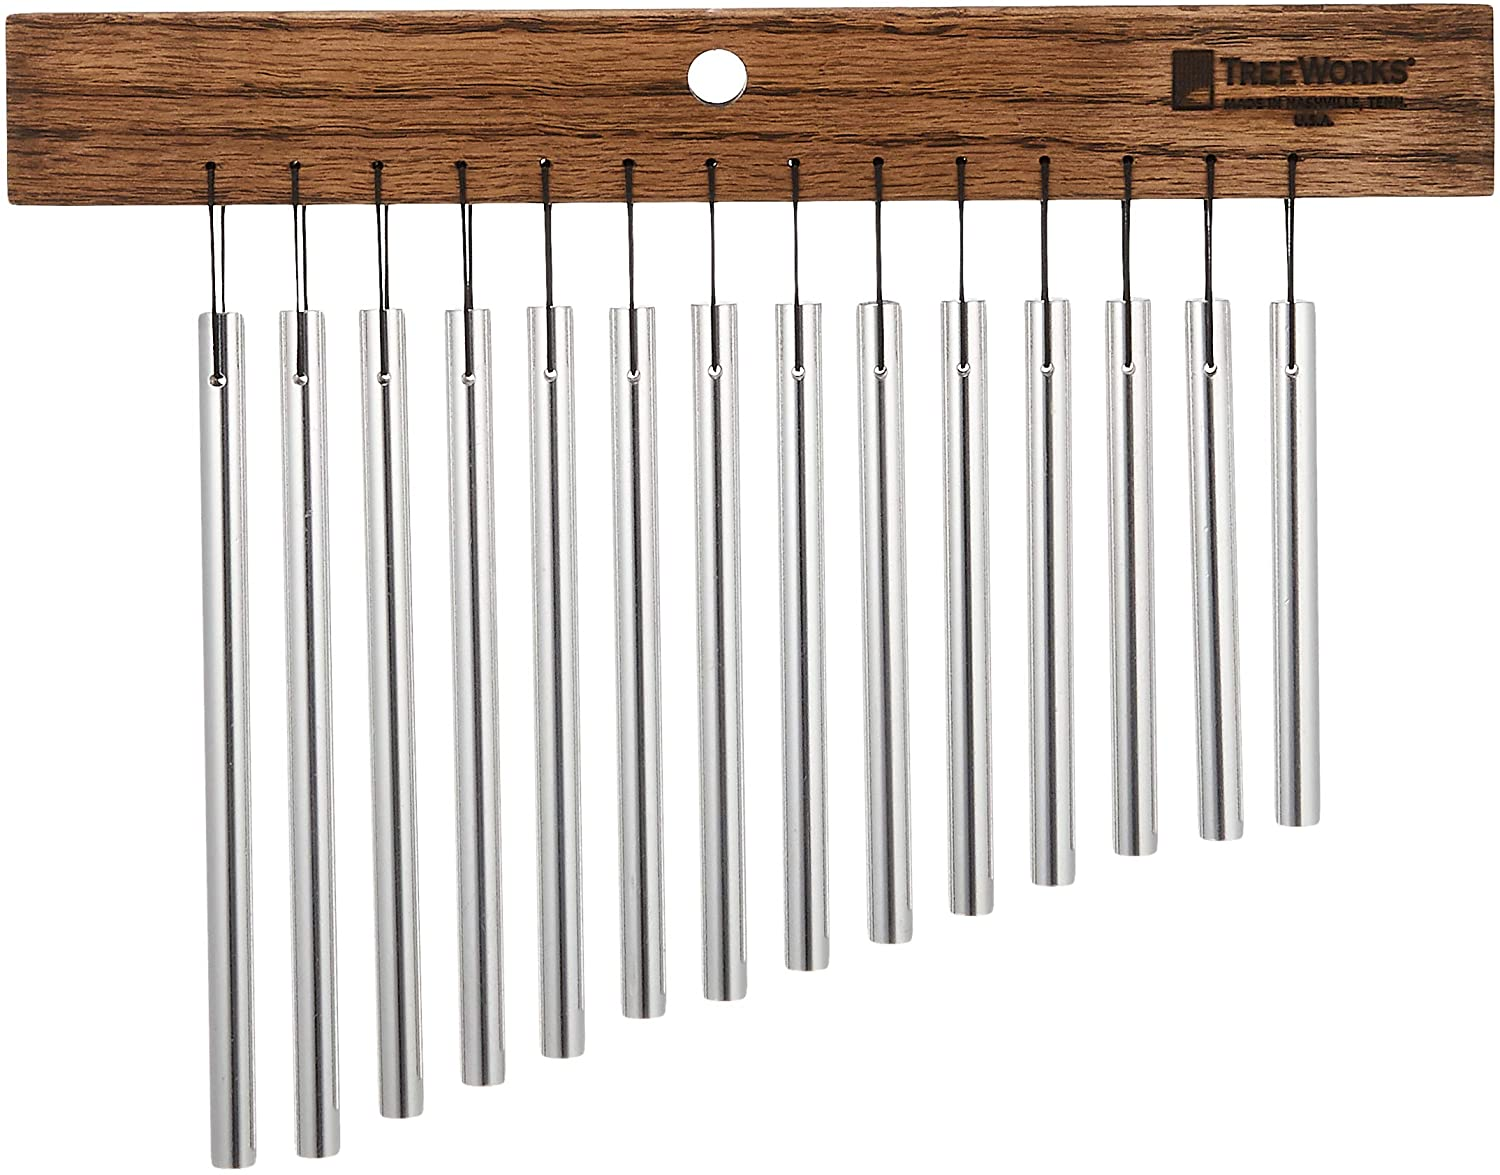 TreeWorks Chimes TRE417 Made in USA Small Single Row Bar Chime, 14-Bar Wind Chime (VIDEO)